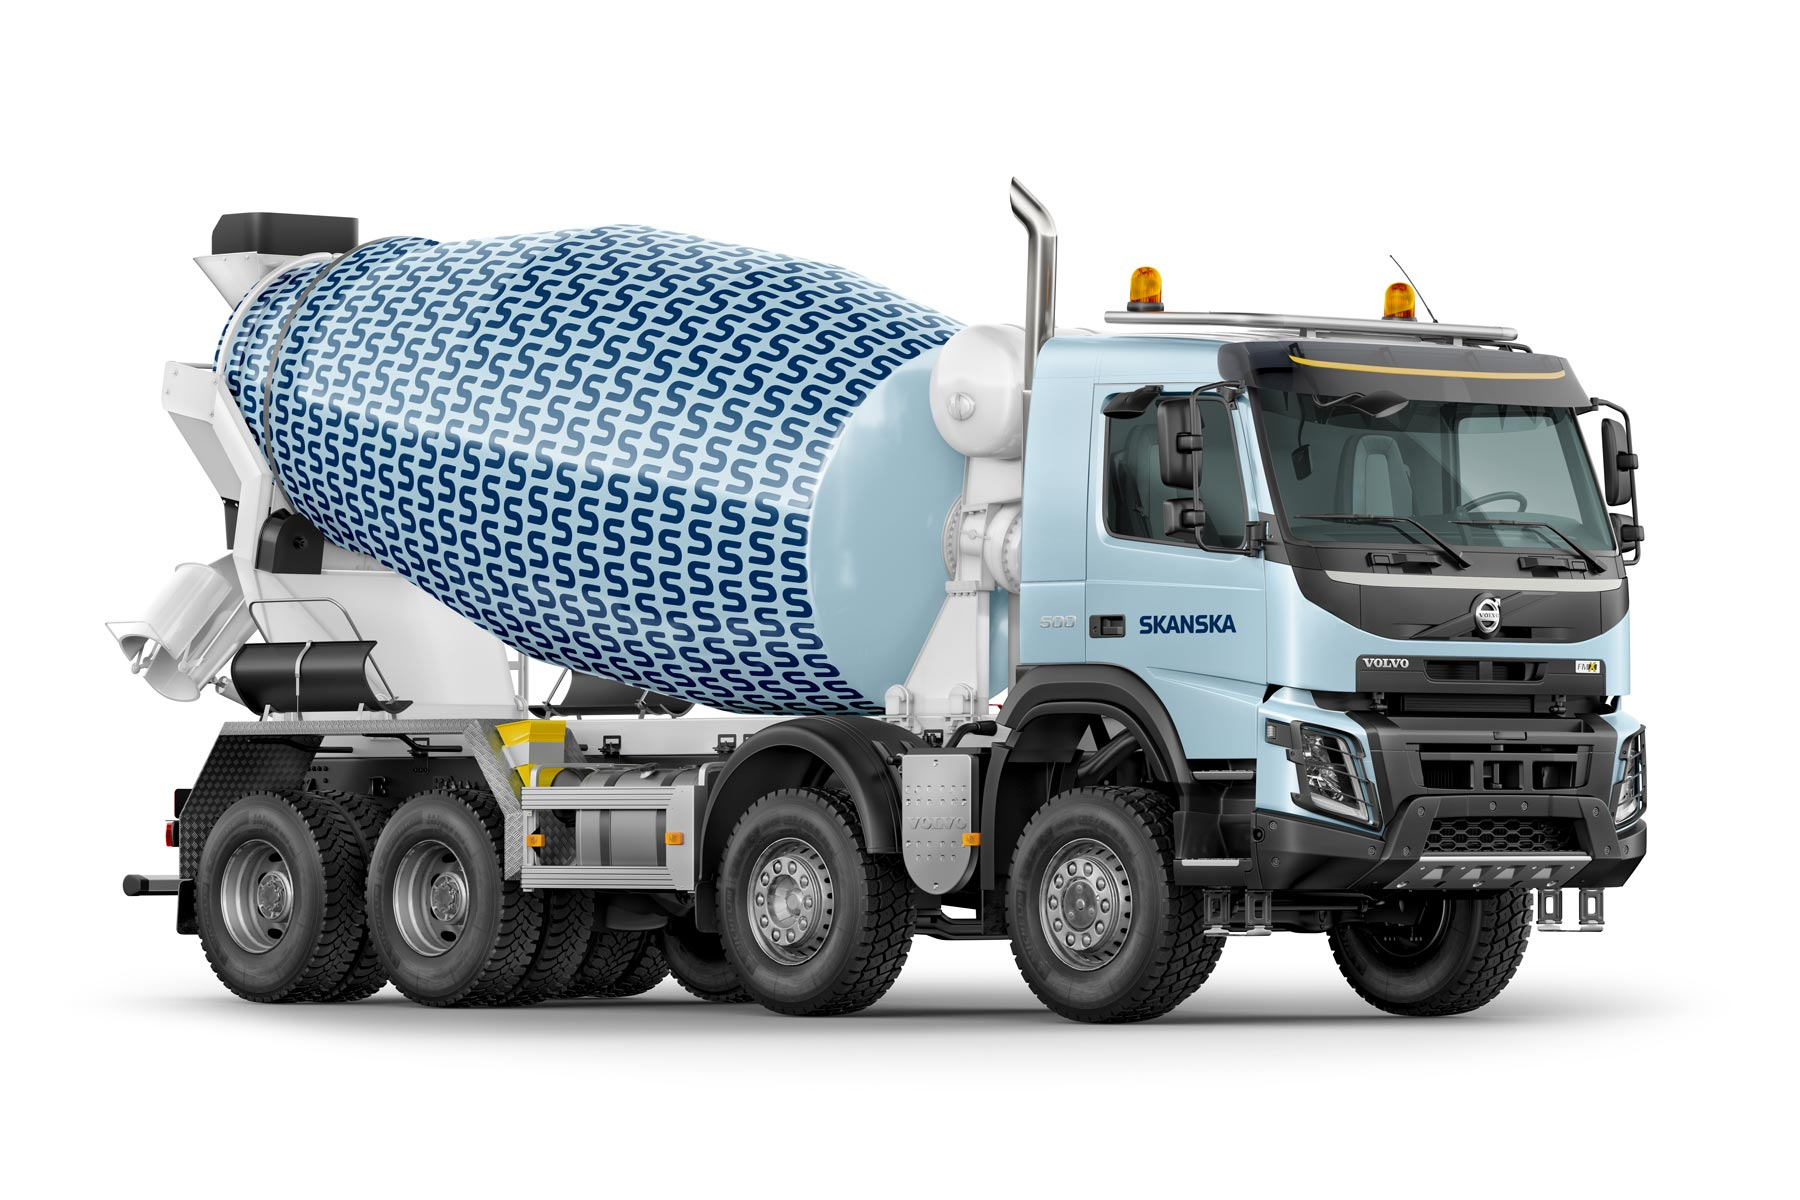 Skanska - Construction Company Logo on a Cement Truck